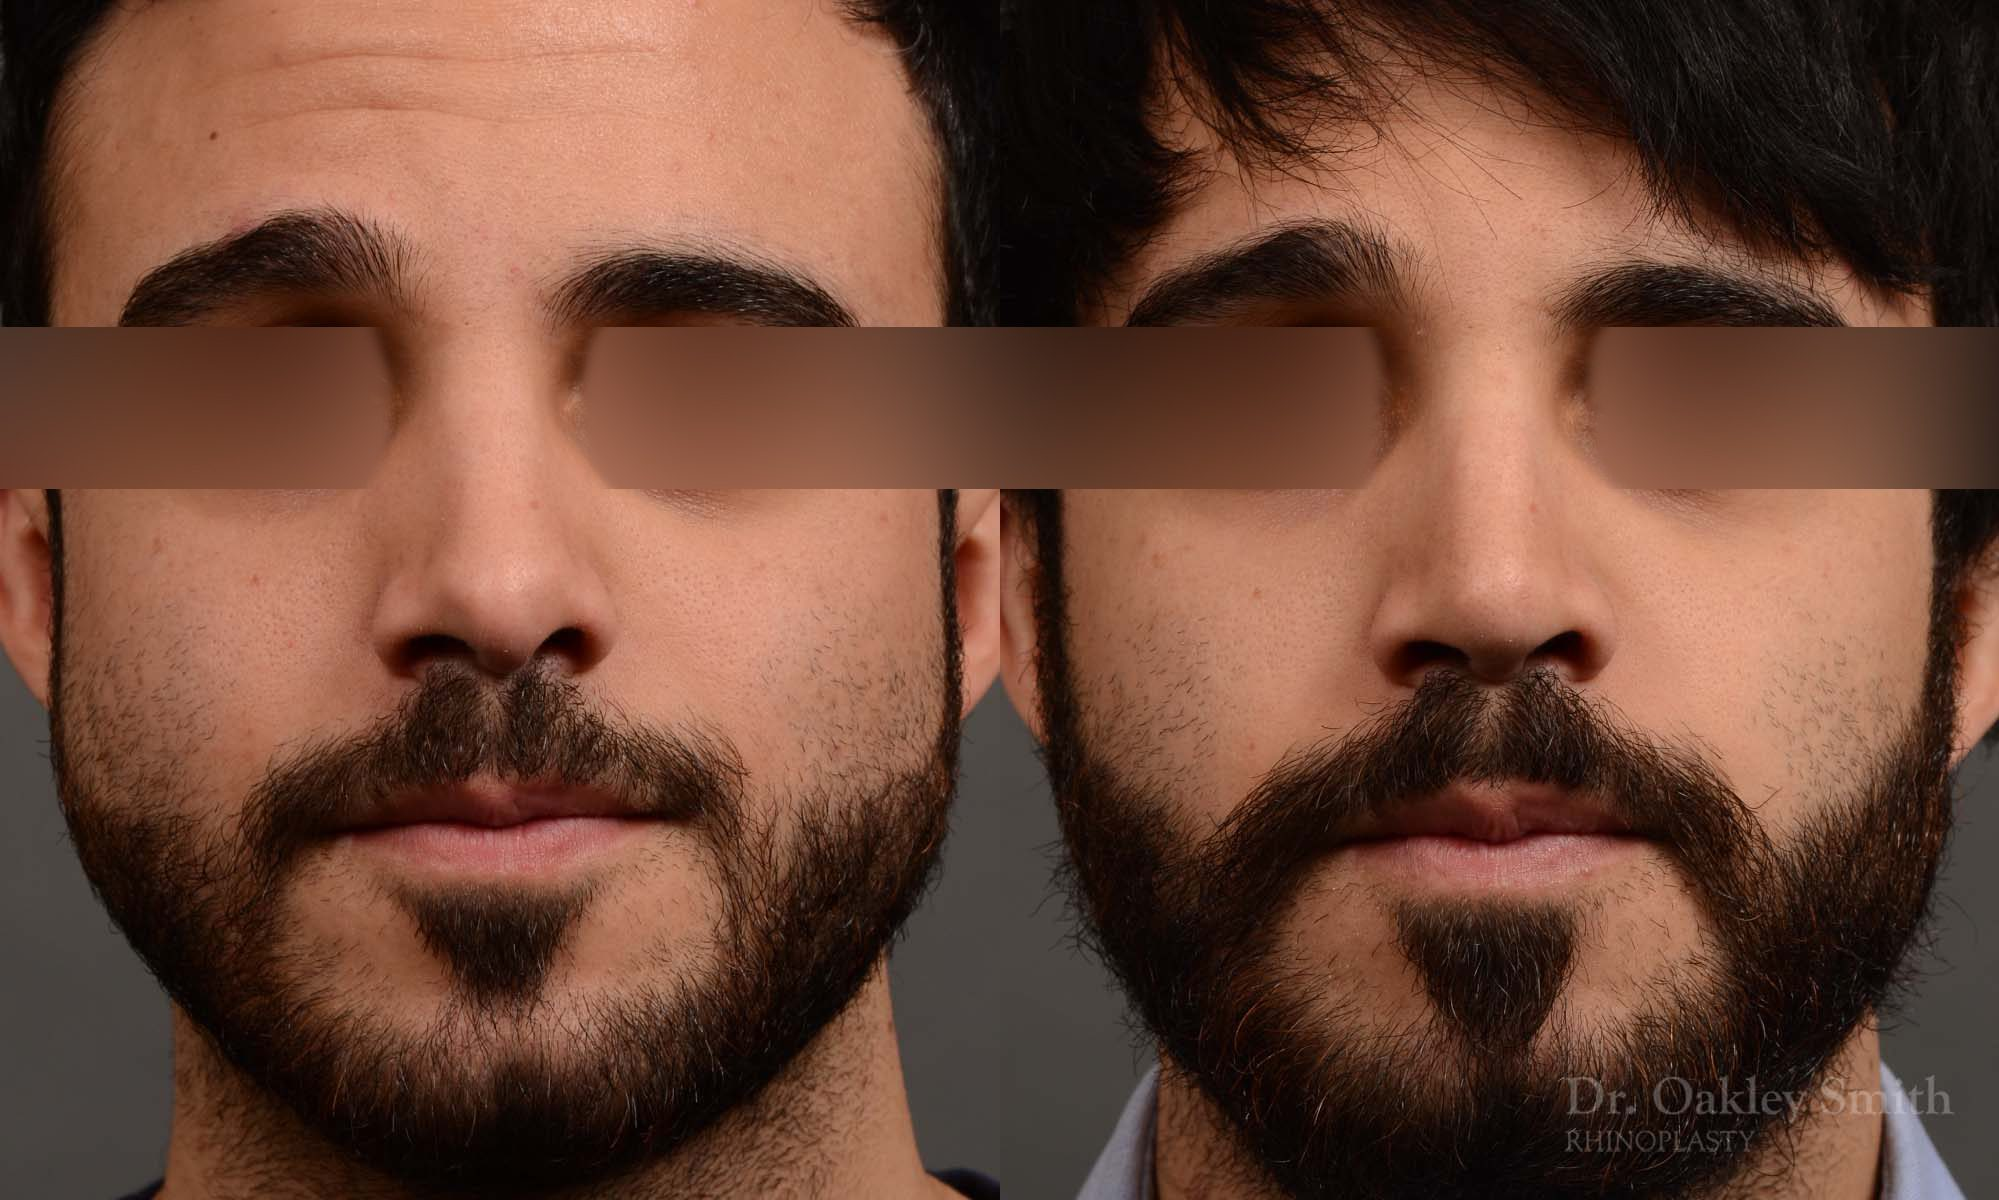 Male revision rhinoplasty